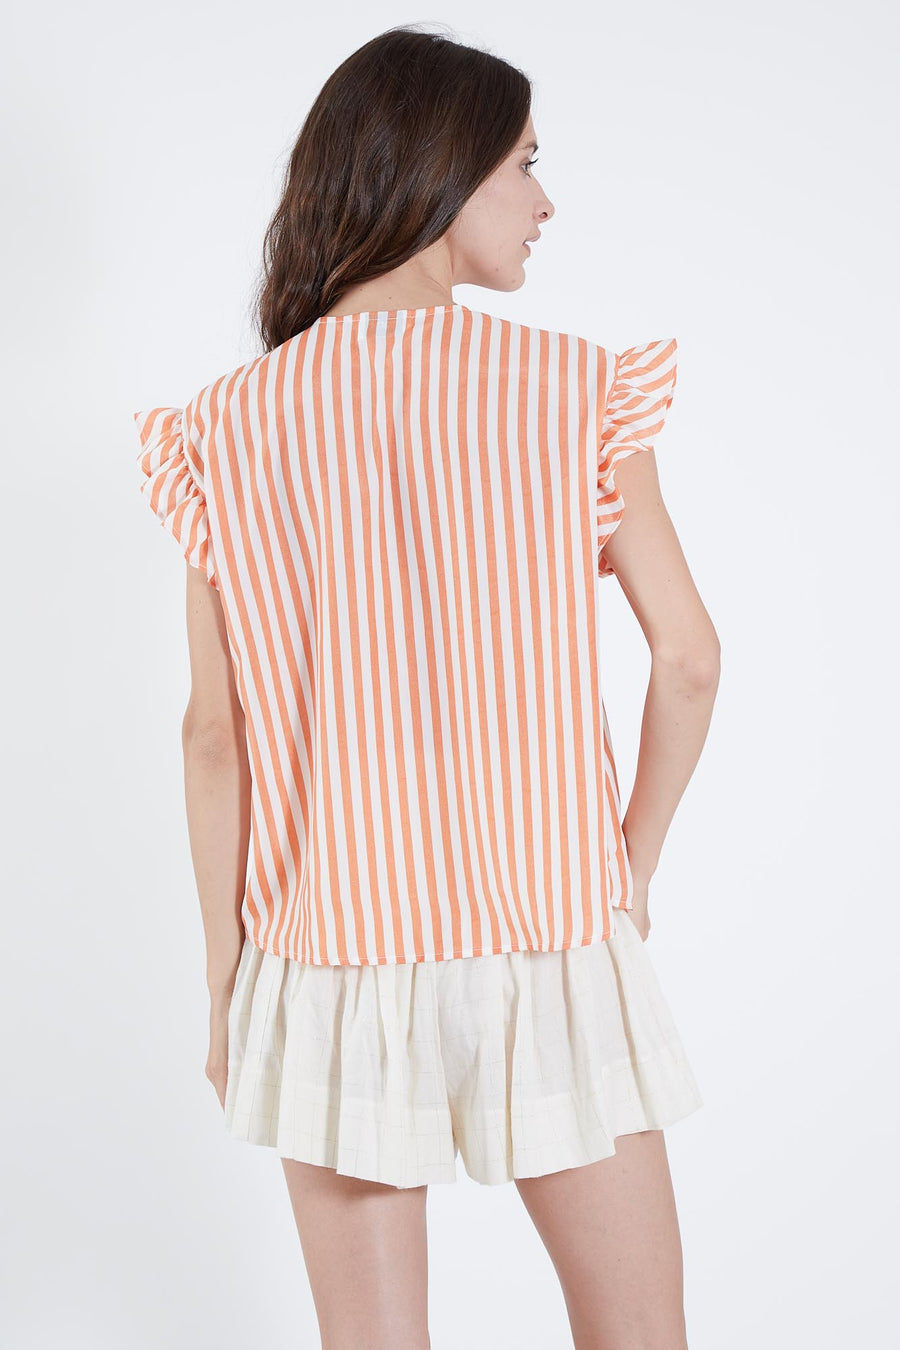 PALM TOP ORANGE AND WHITE STRIPE